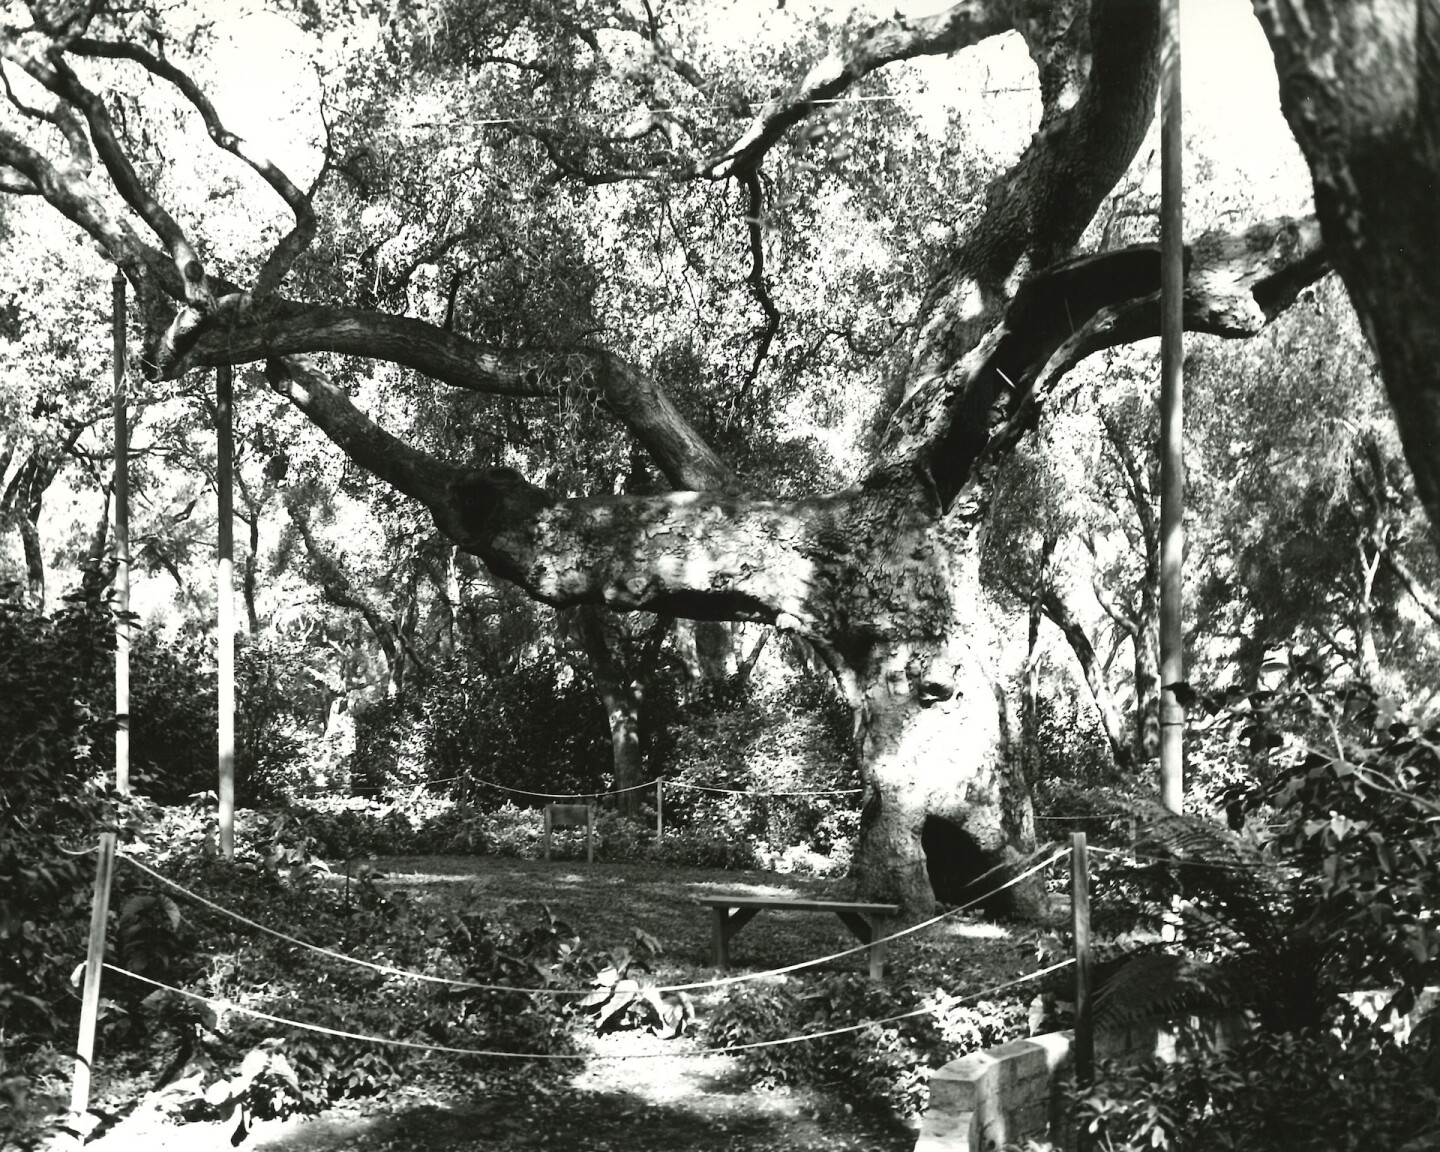 Descanso Gardens' Old Verdugo, before its demise